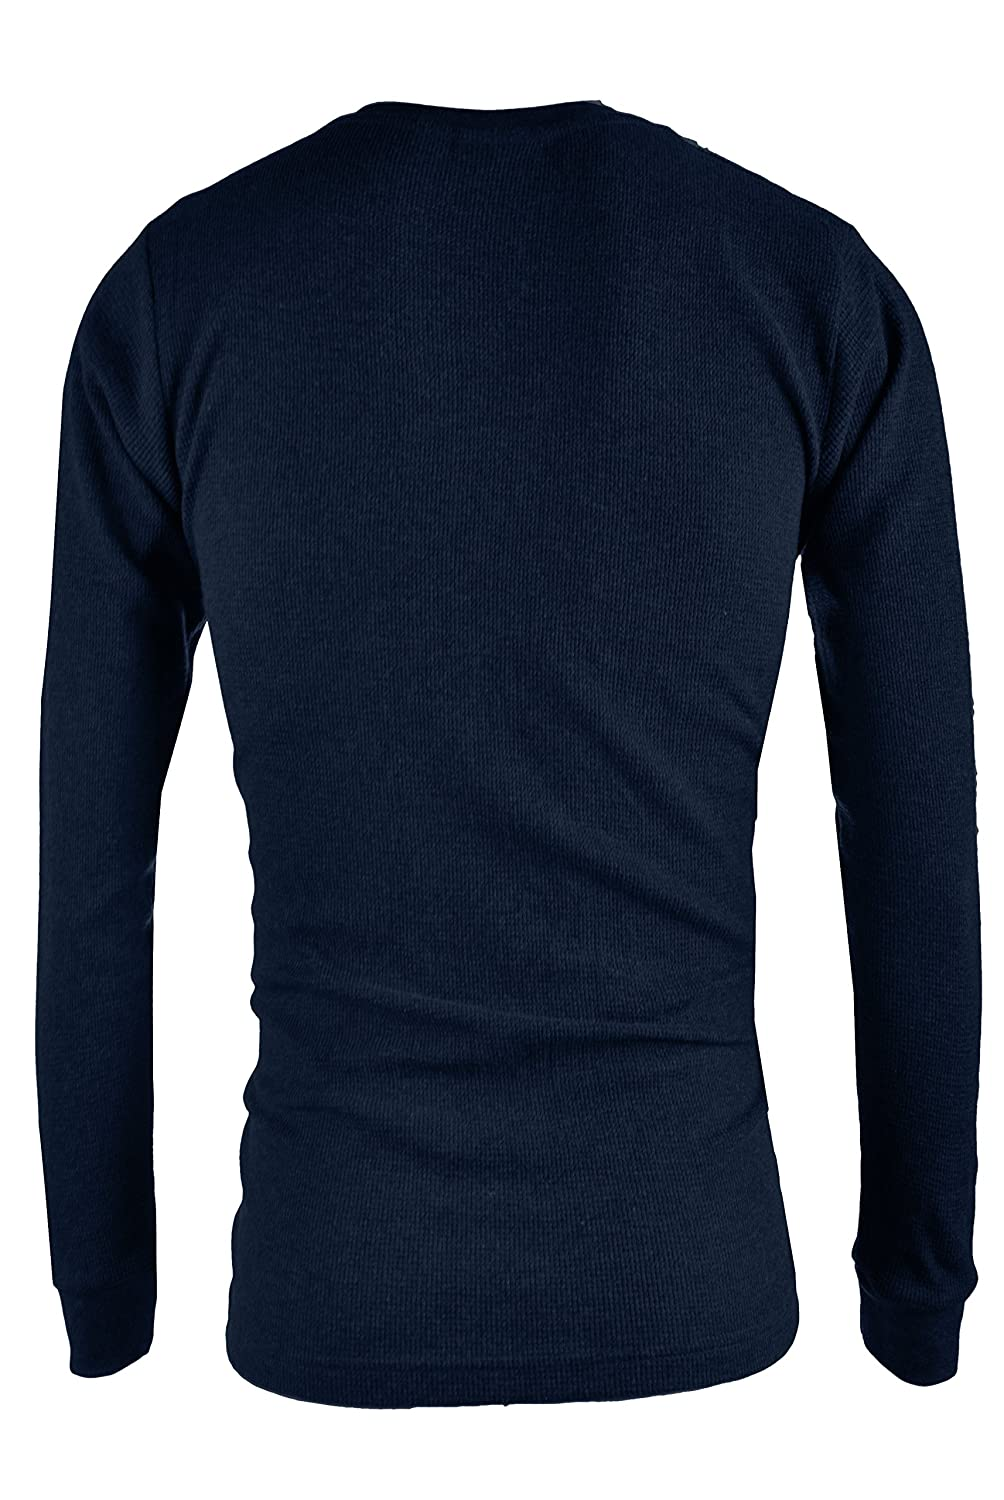 OLLIE ARNES Mens Long Sleeve Heavy Warm Thermal Crew Neck Shirt 100/% Cotton Top